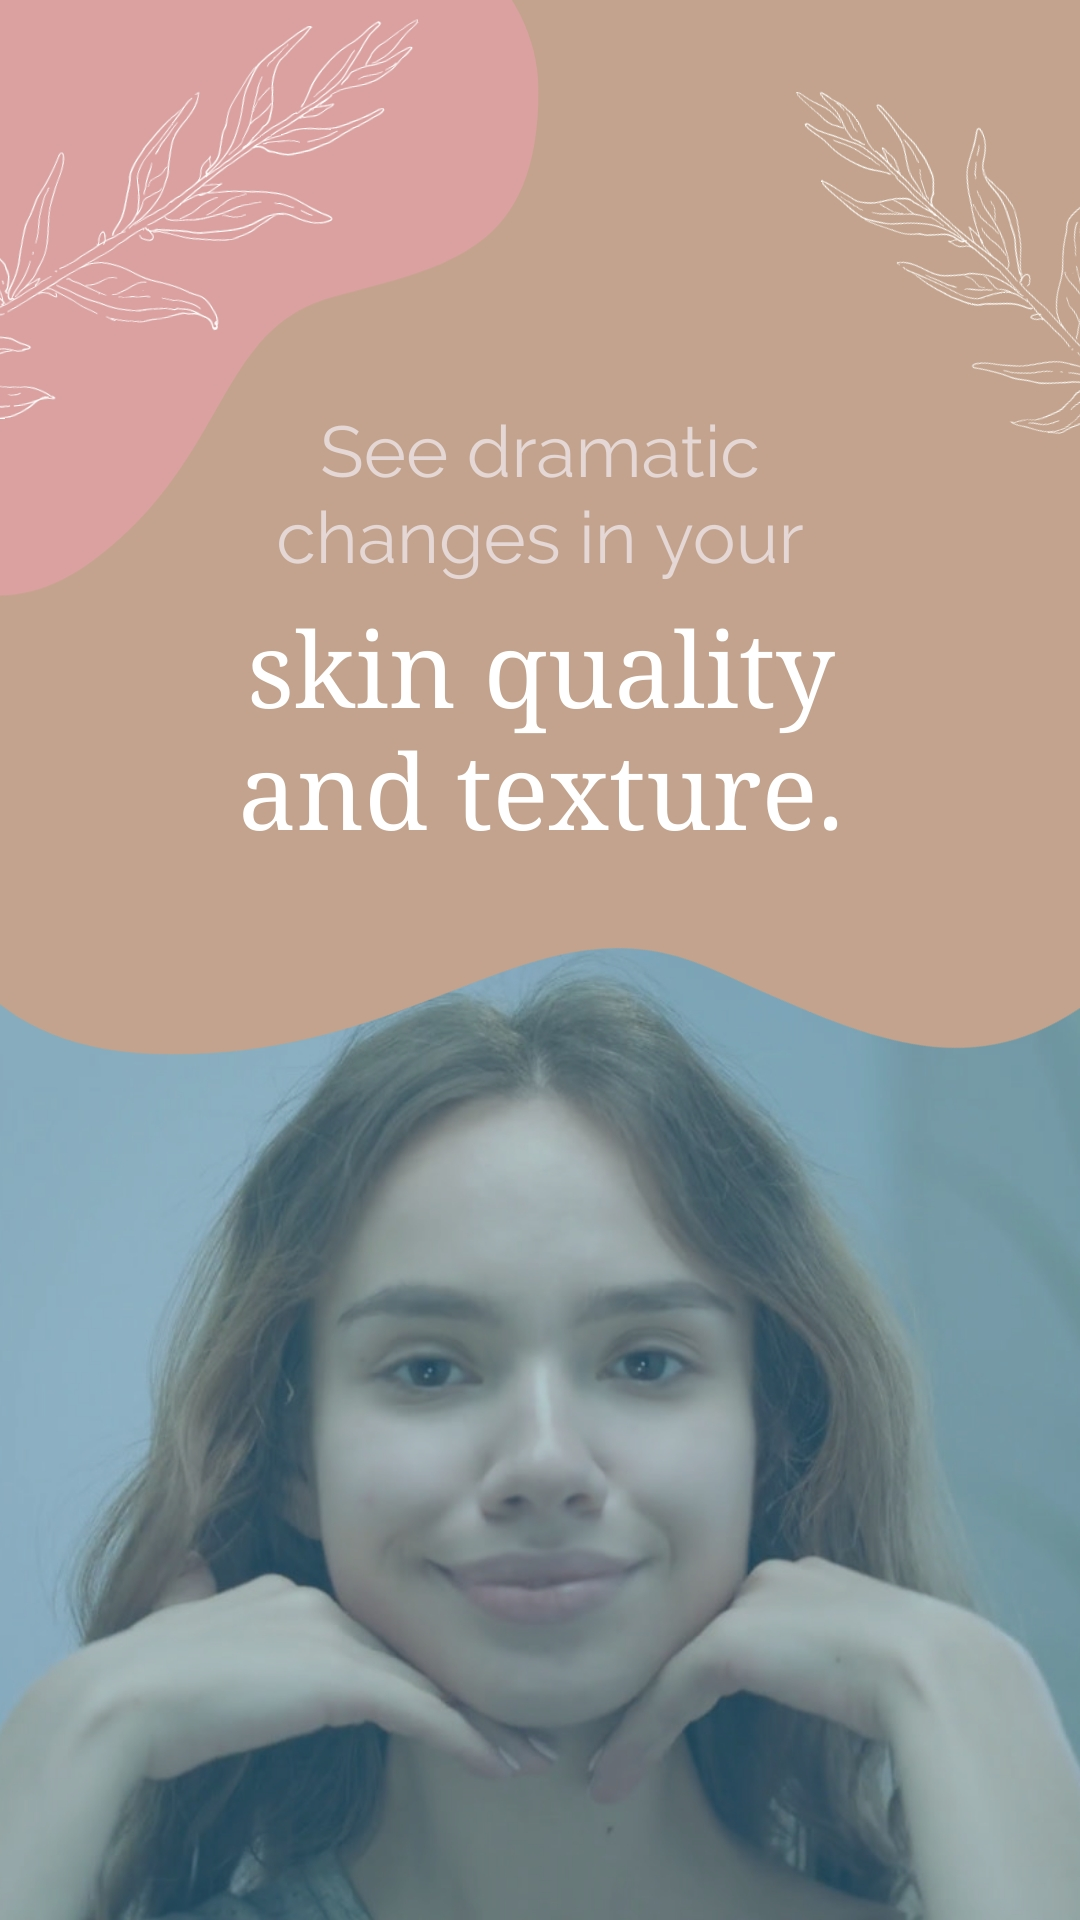 Skincare Product - Instagram Video Ad Template